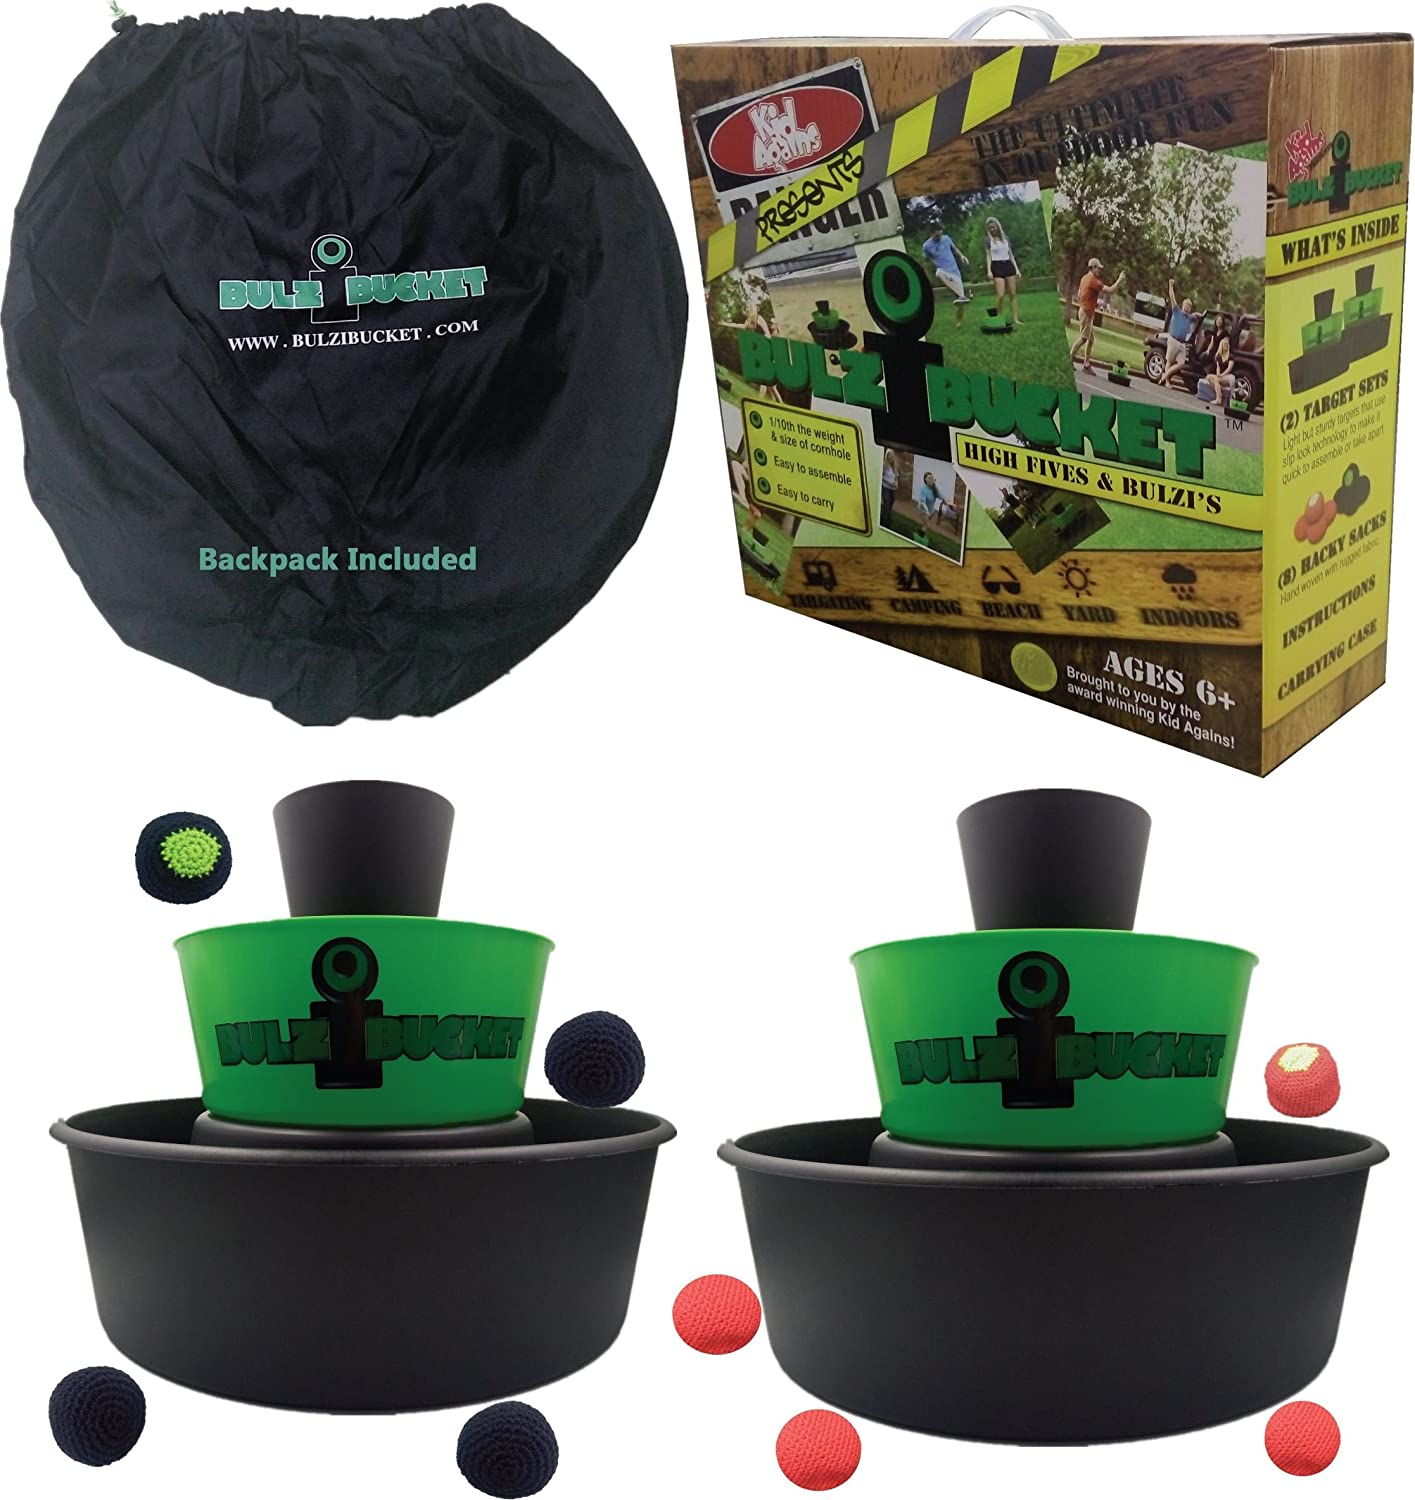 BULZiBUCKET Indoor Outdoor Game